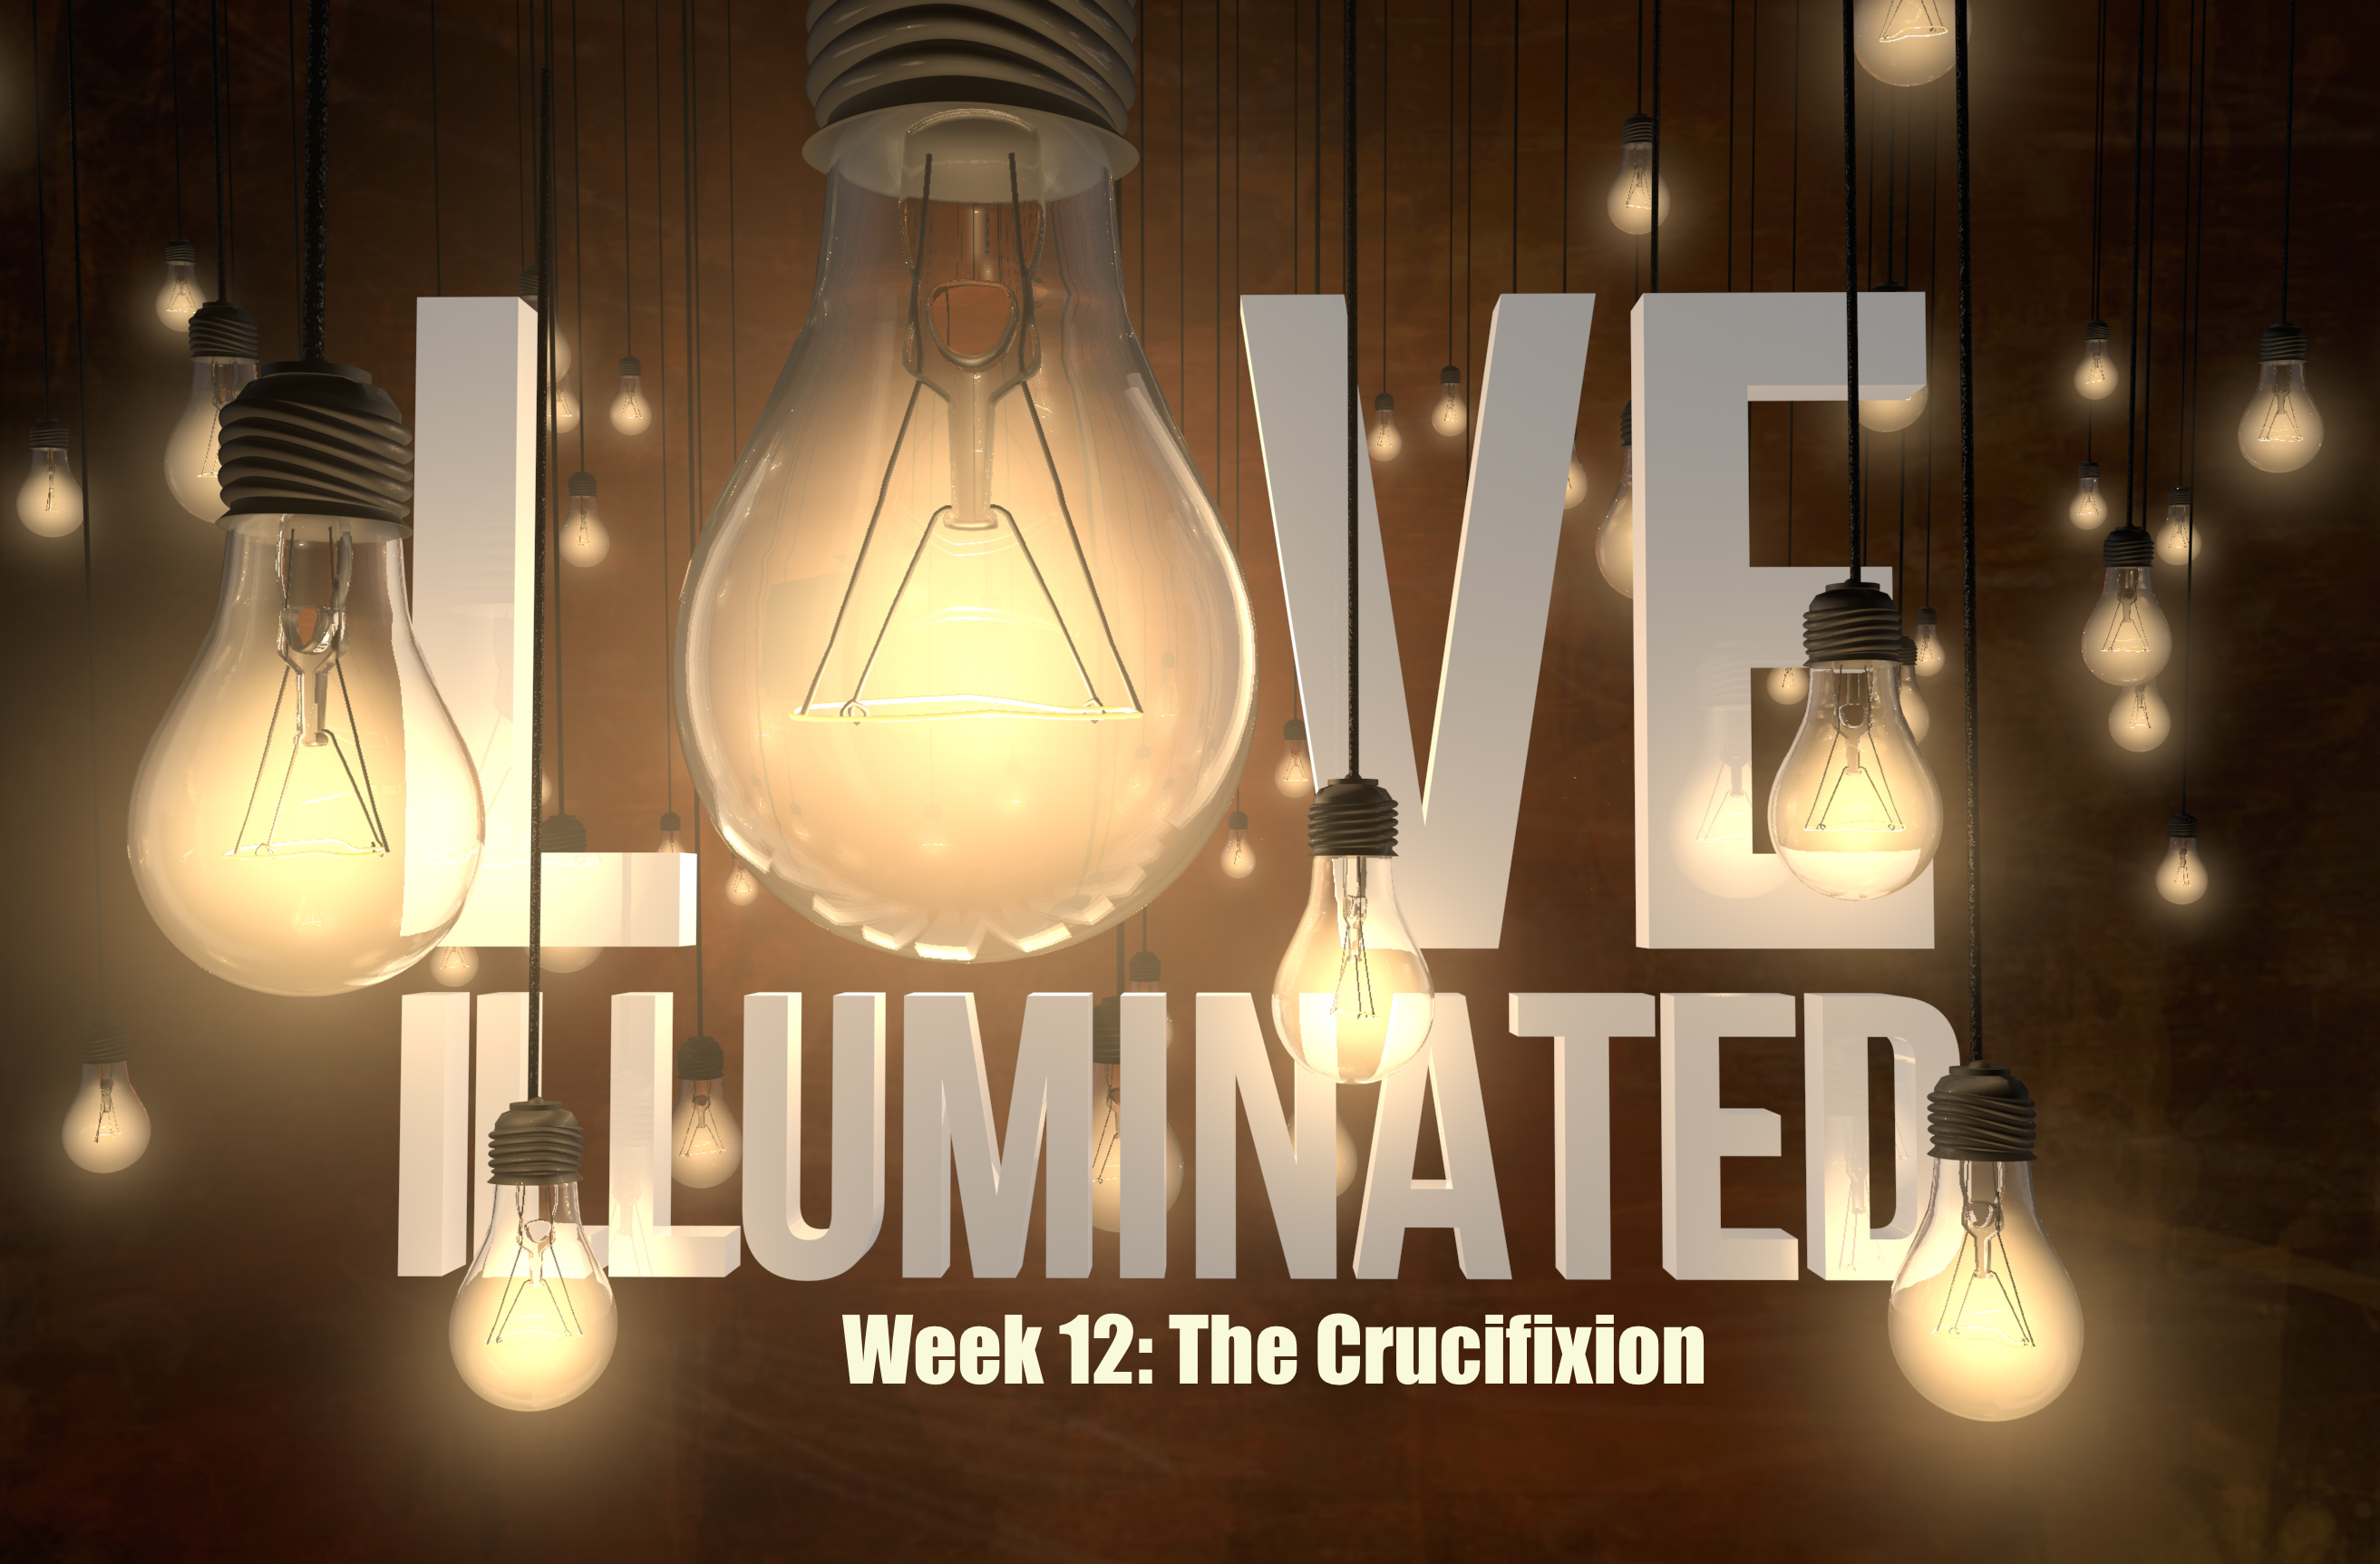 Love Illuminated, Part 12: The Crucifixion